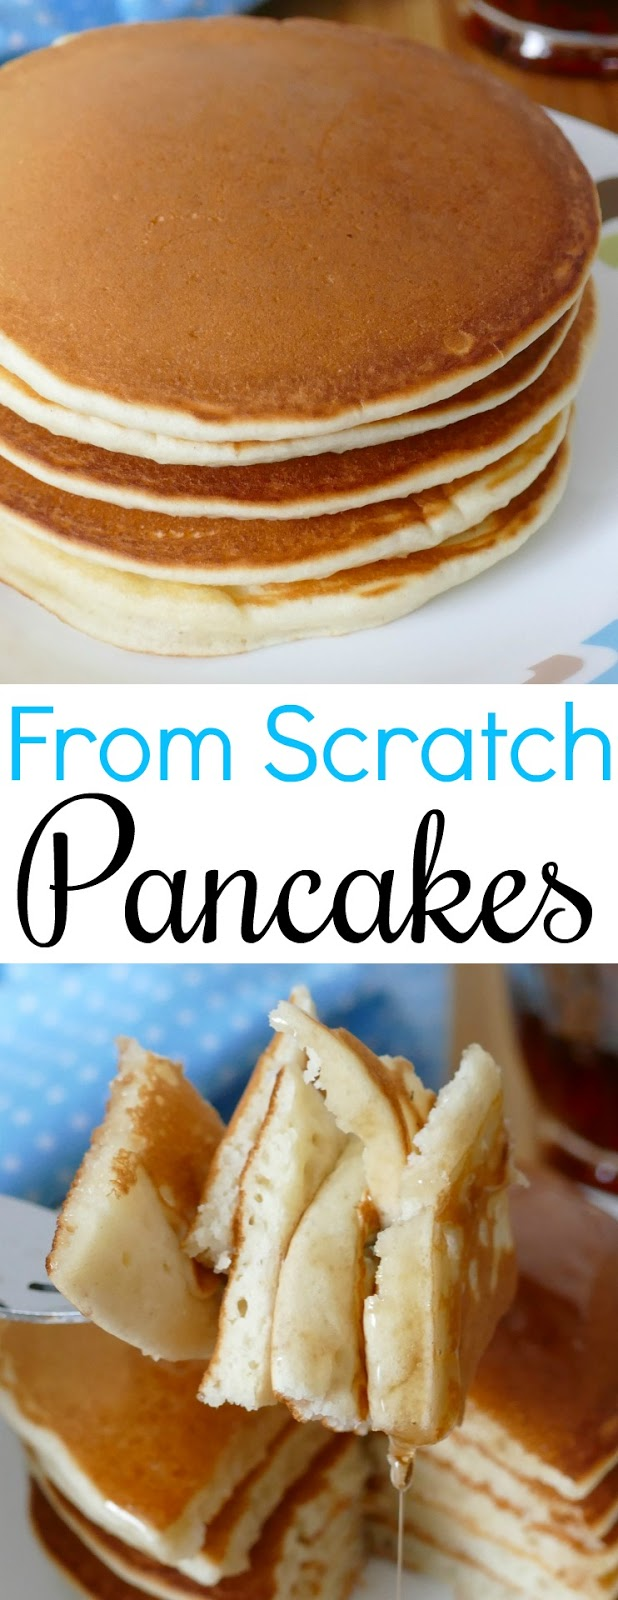 Skip store bought and make your pancakes at home from scratch! This breakfast recipe is SO easy, delicious and family approved! Try adding chocolate chips, bananas or blueberries and make it different every time!